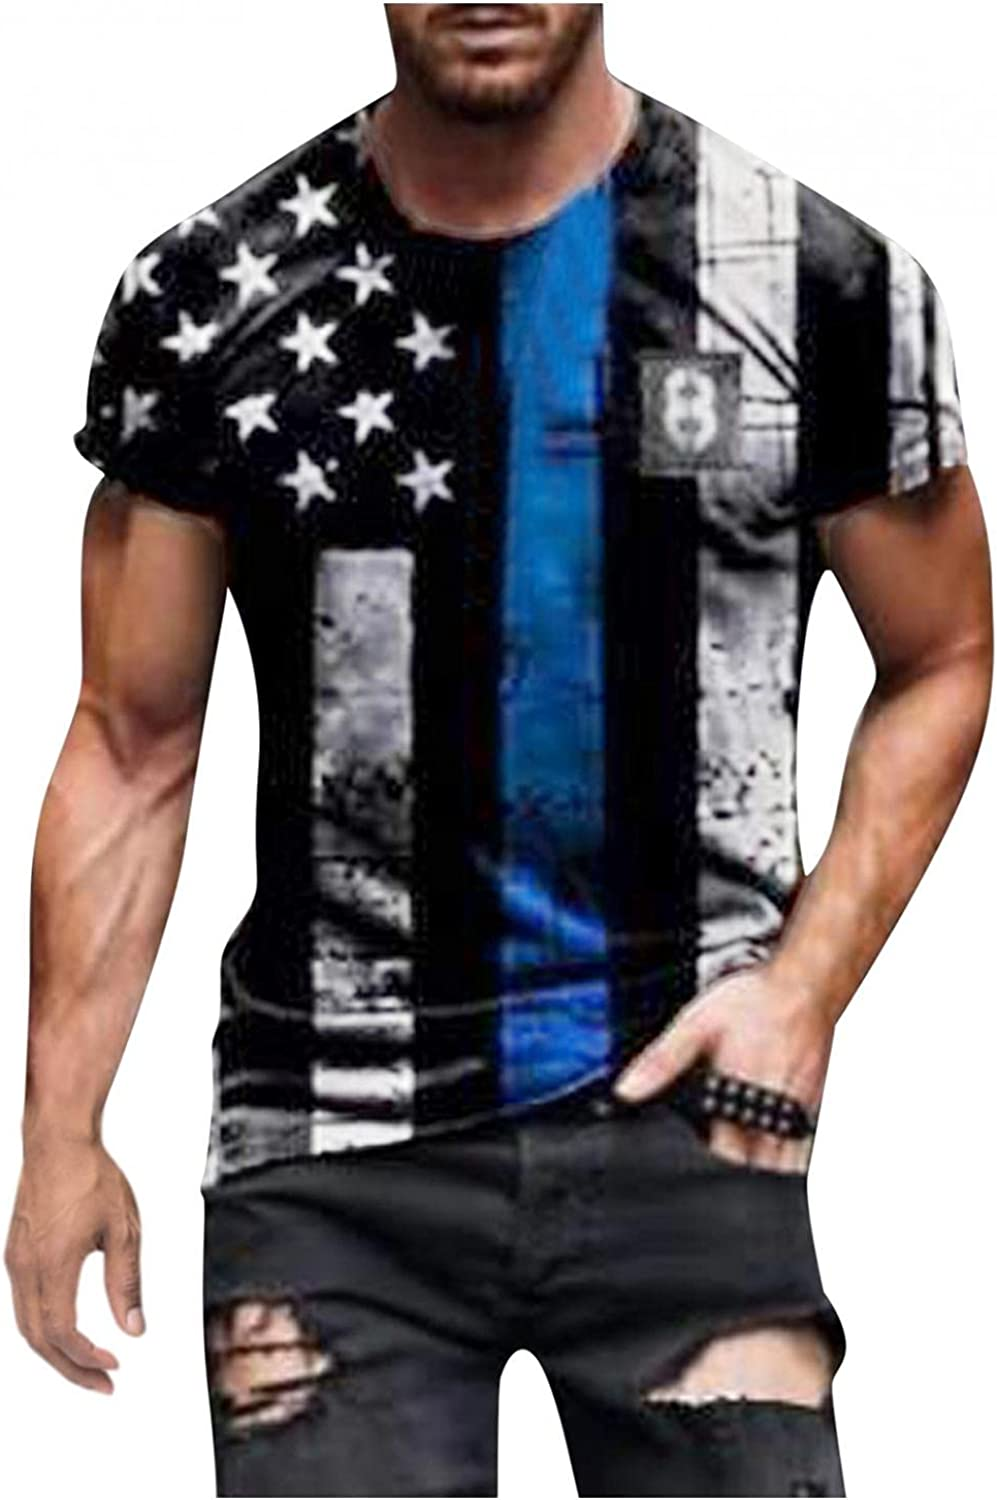 Huangse Mens Patriotic Soldier T-Shirt Workout Athletics Muscle Top American Flag Tops Slim Fit Printed Graphic Tee